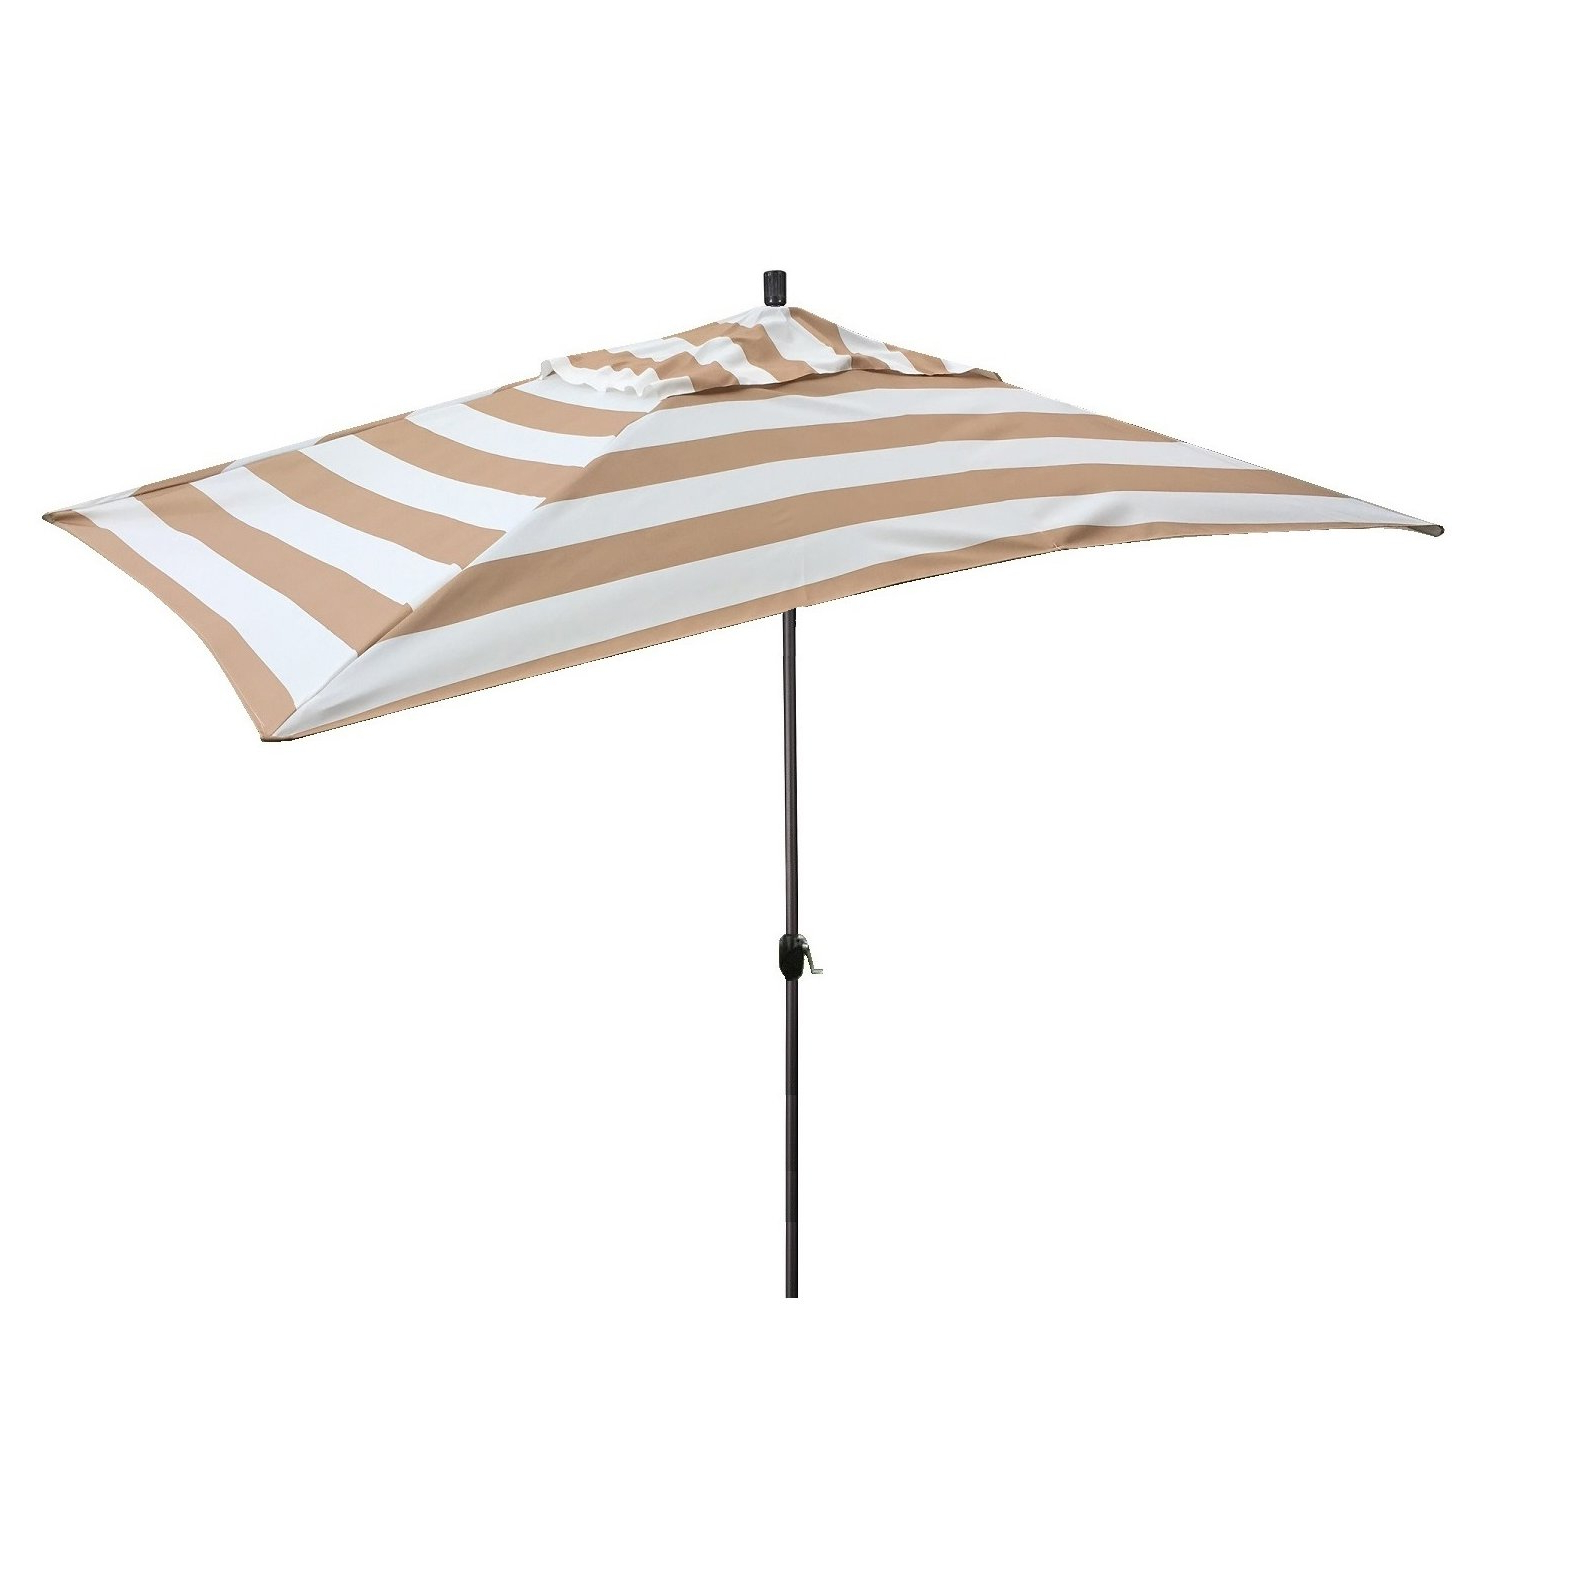 Haverhill Umbrellas Intended For Well Known Jalynn 10' X 6' Rectangular Market Umbrella (View 8 of 20)